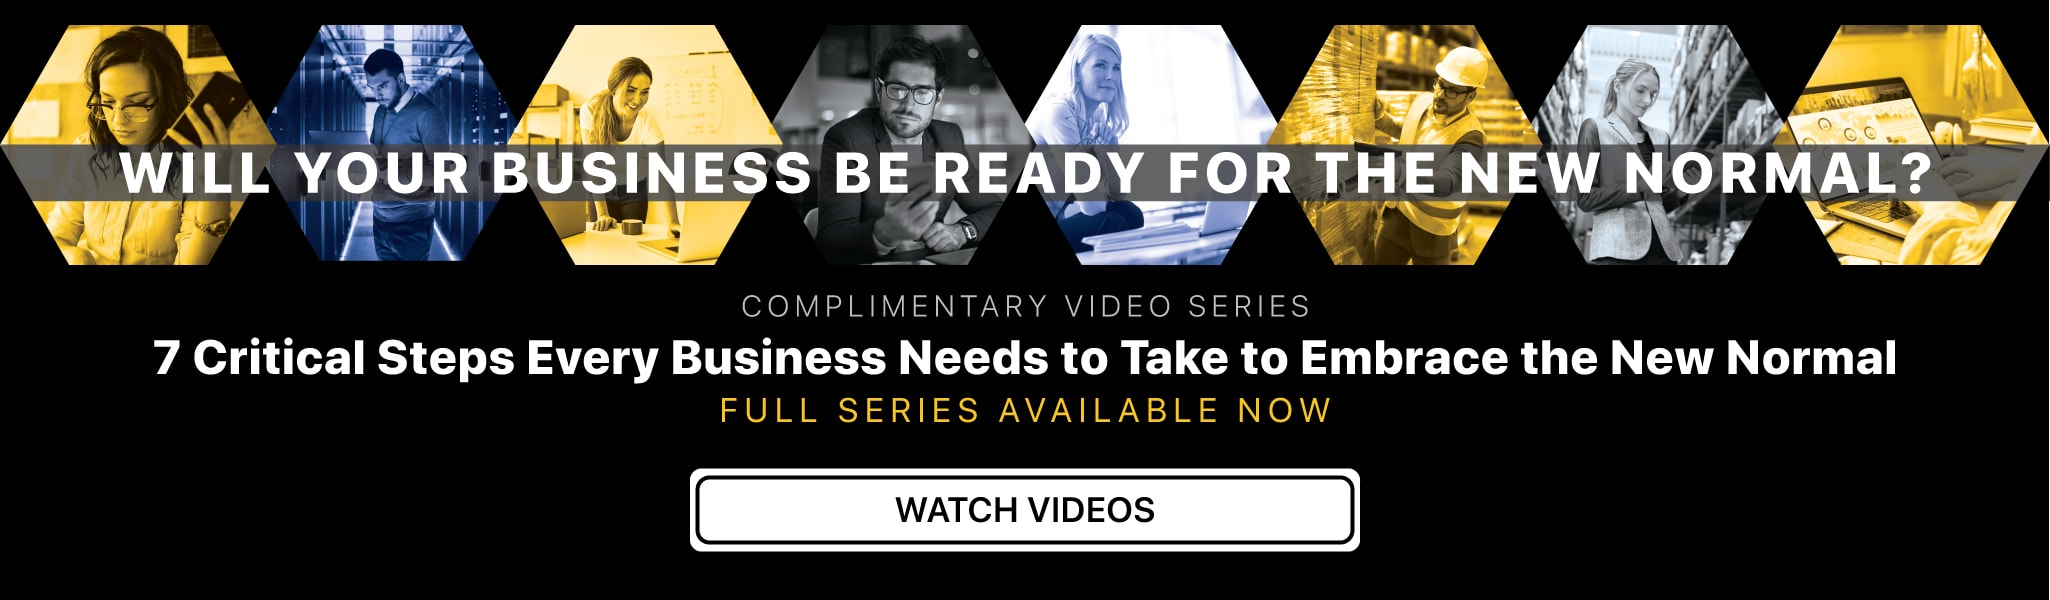 COMPLIMENTARY WEBINAR SERIES 7 Critical Steps Every Business Needs to Take to Embrace the New Normal Every Tuesday and Thursday starting Thursday, May 7, 2020 at 2pm EDT